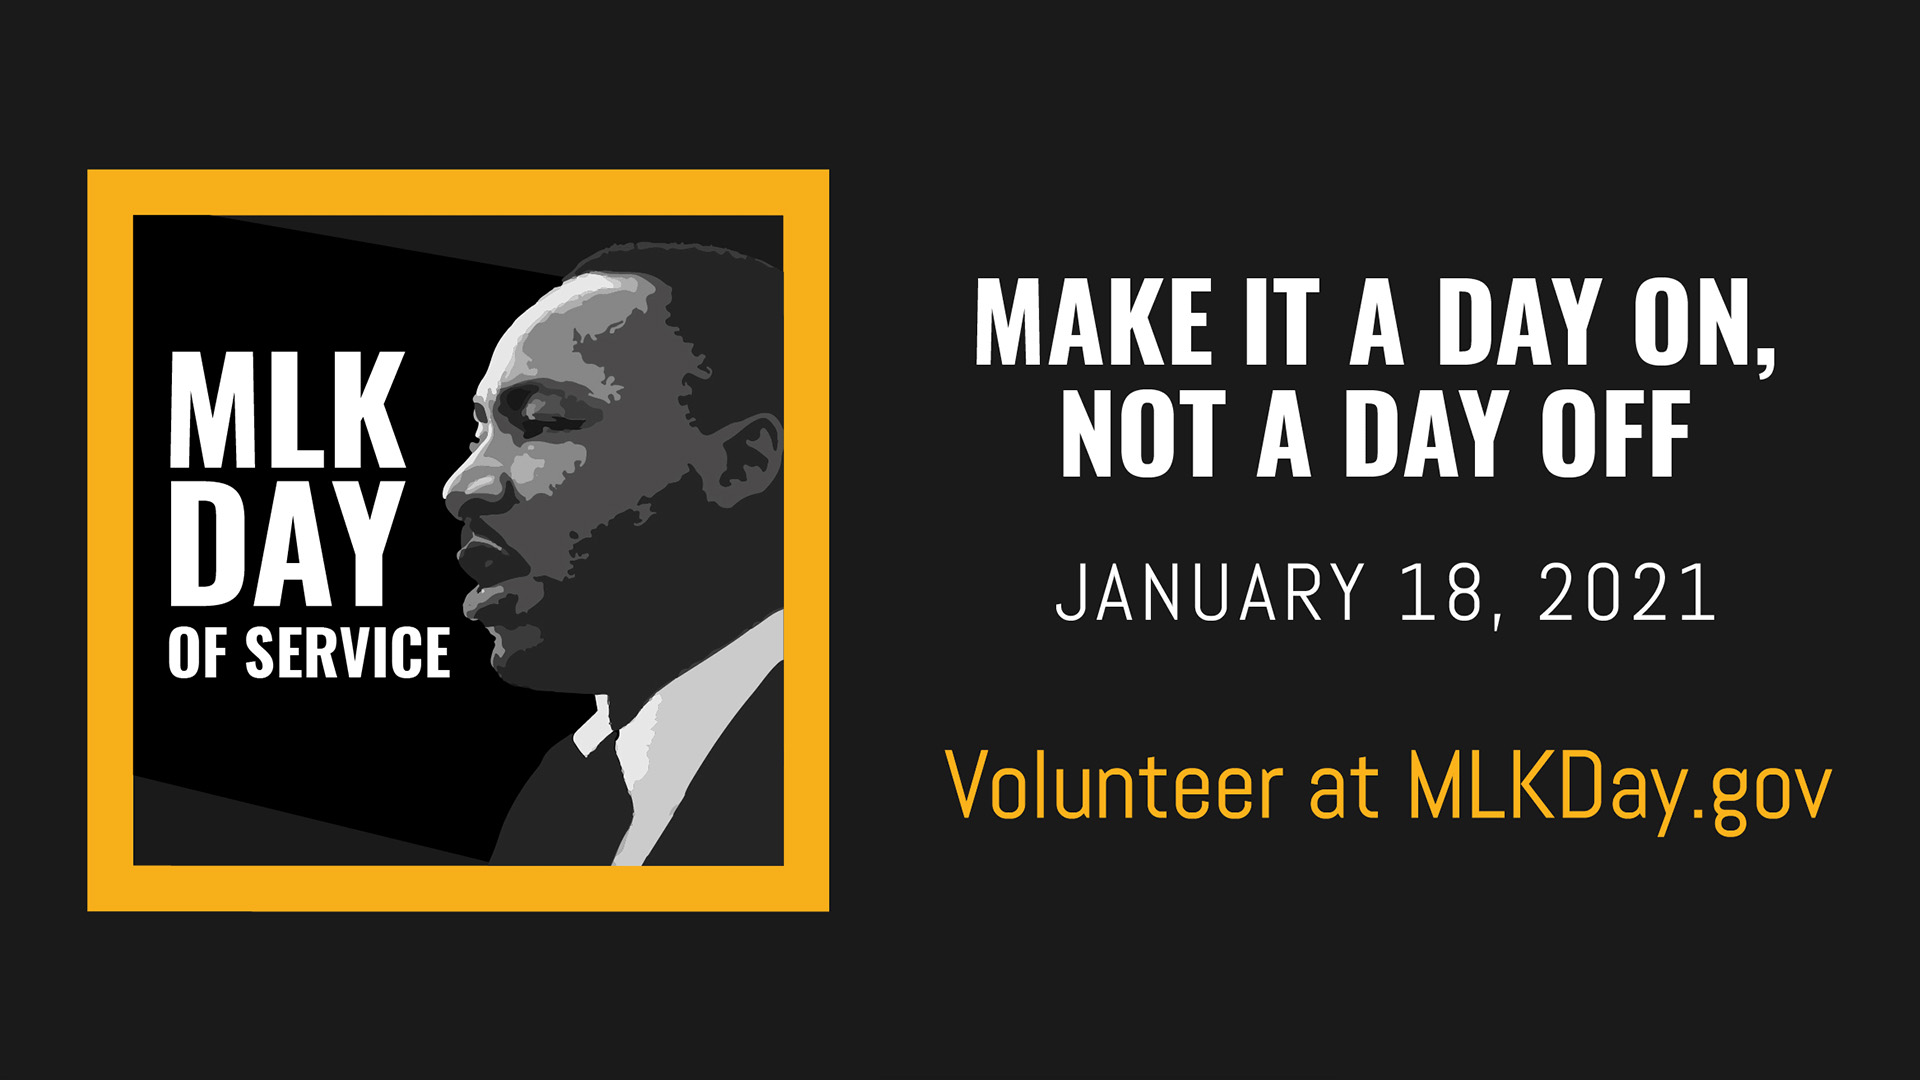 MLK Day of Service | Make it a Day on, Not a day off. January 18, 2021. Volunteer at MLKDay.gov